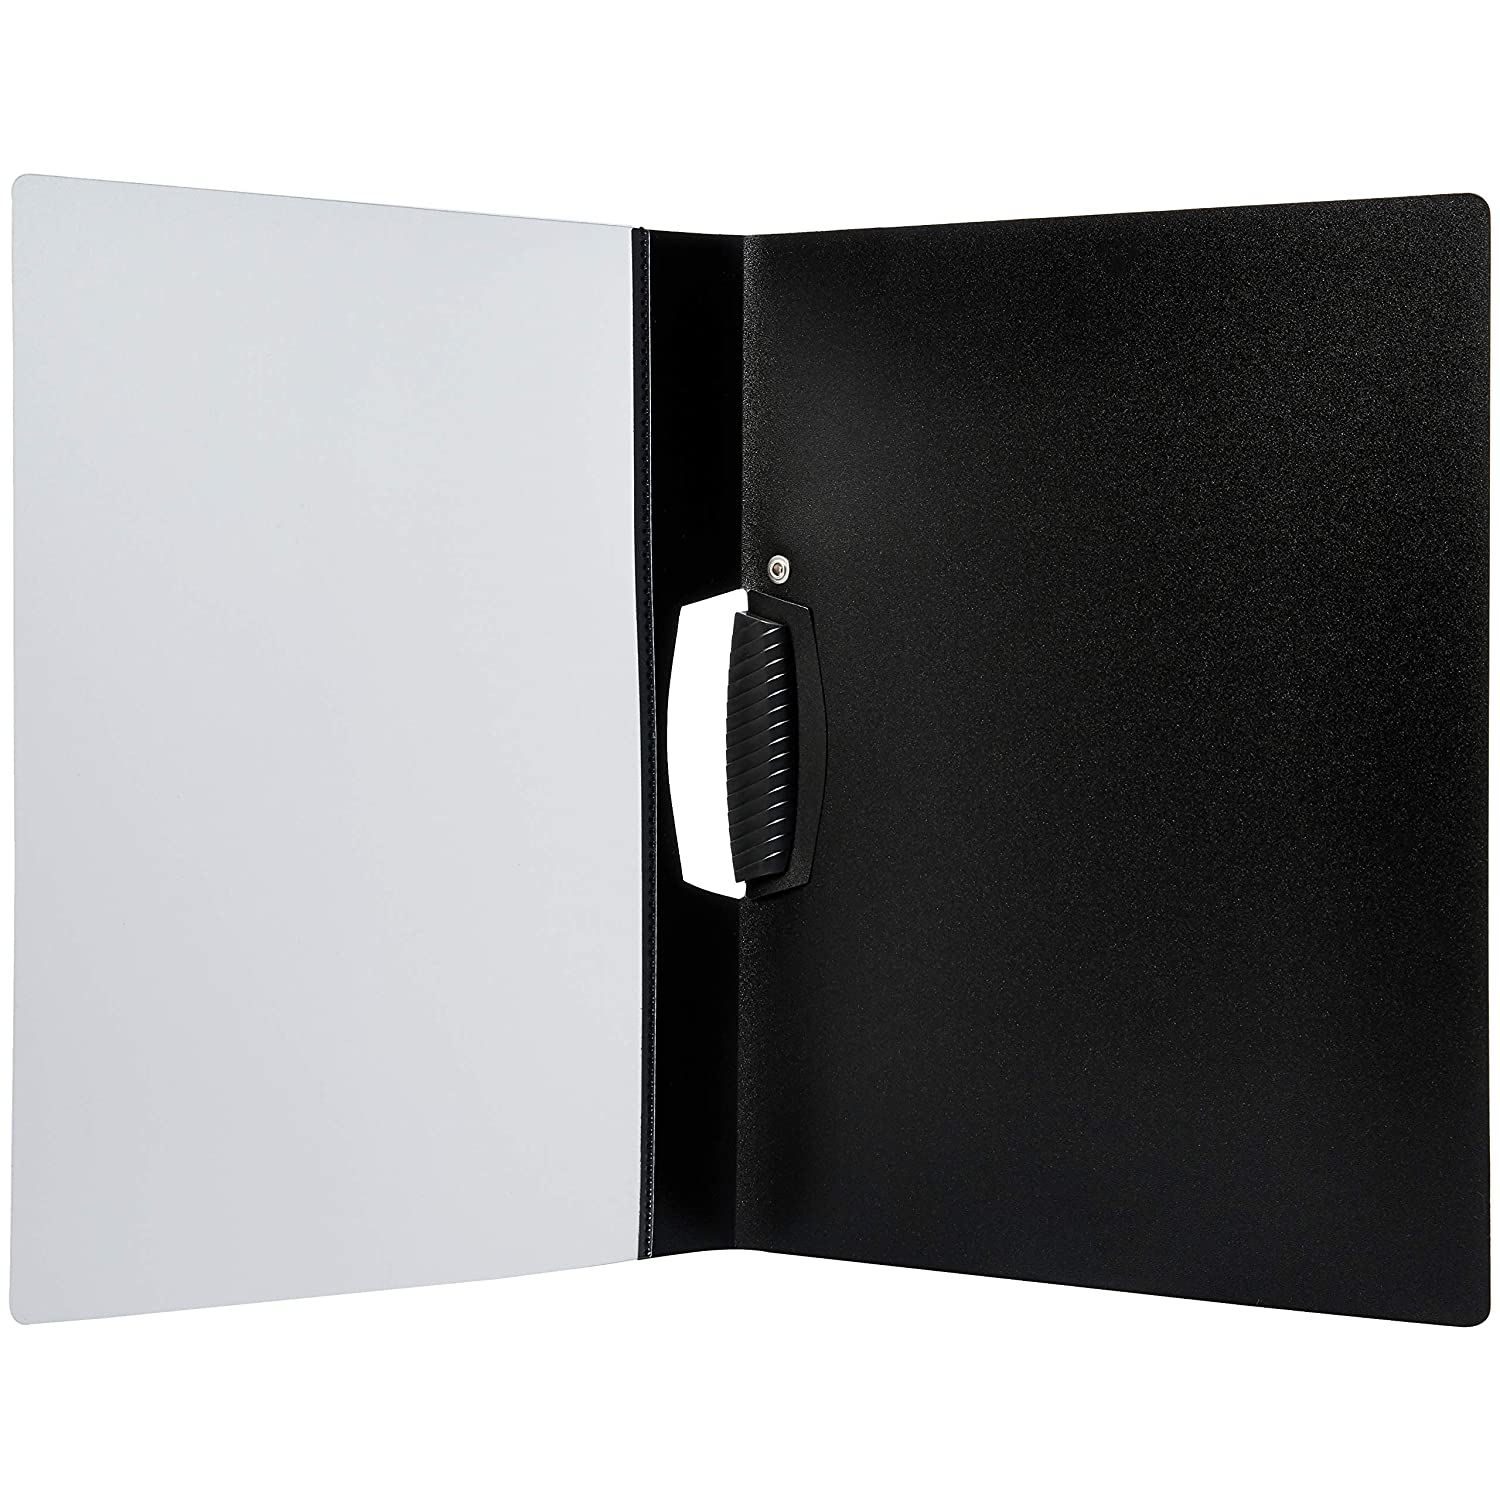 Basics Clip Report Cover Pack of 10